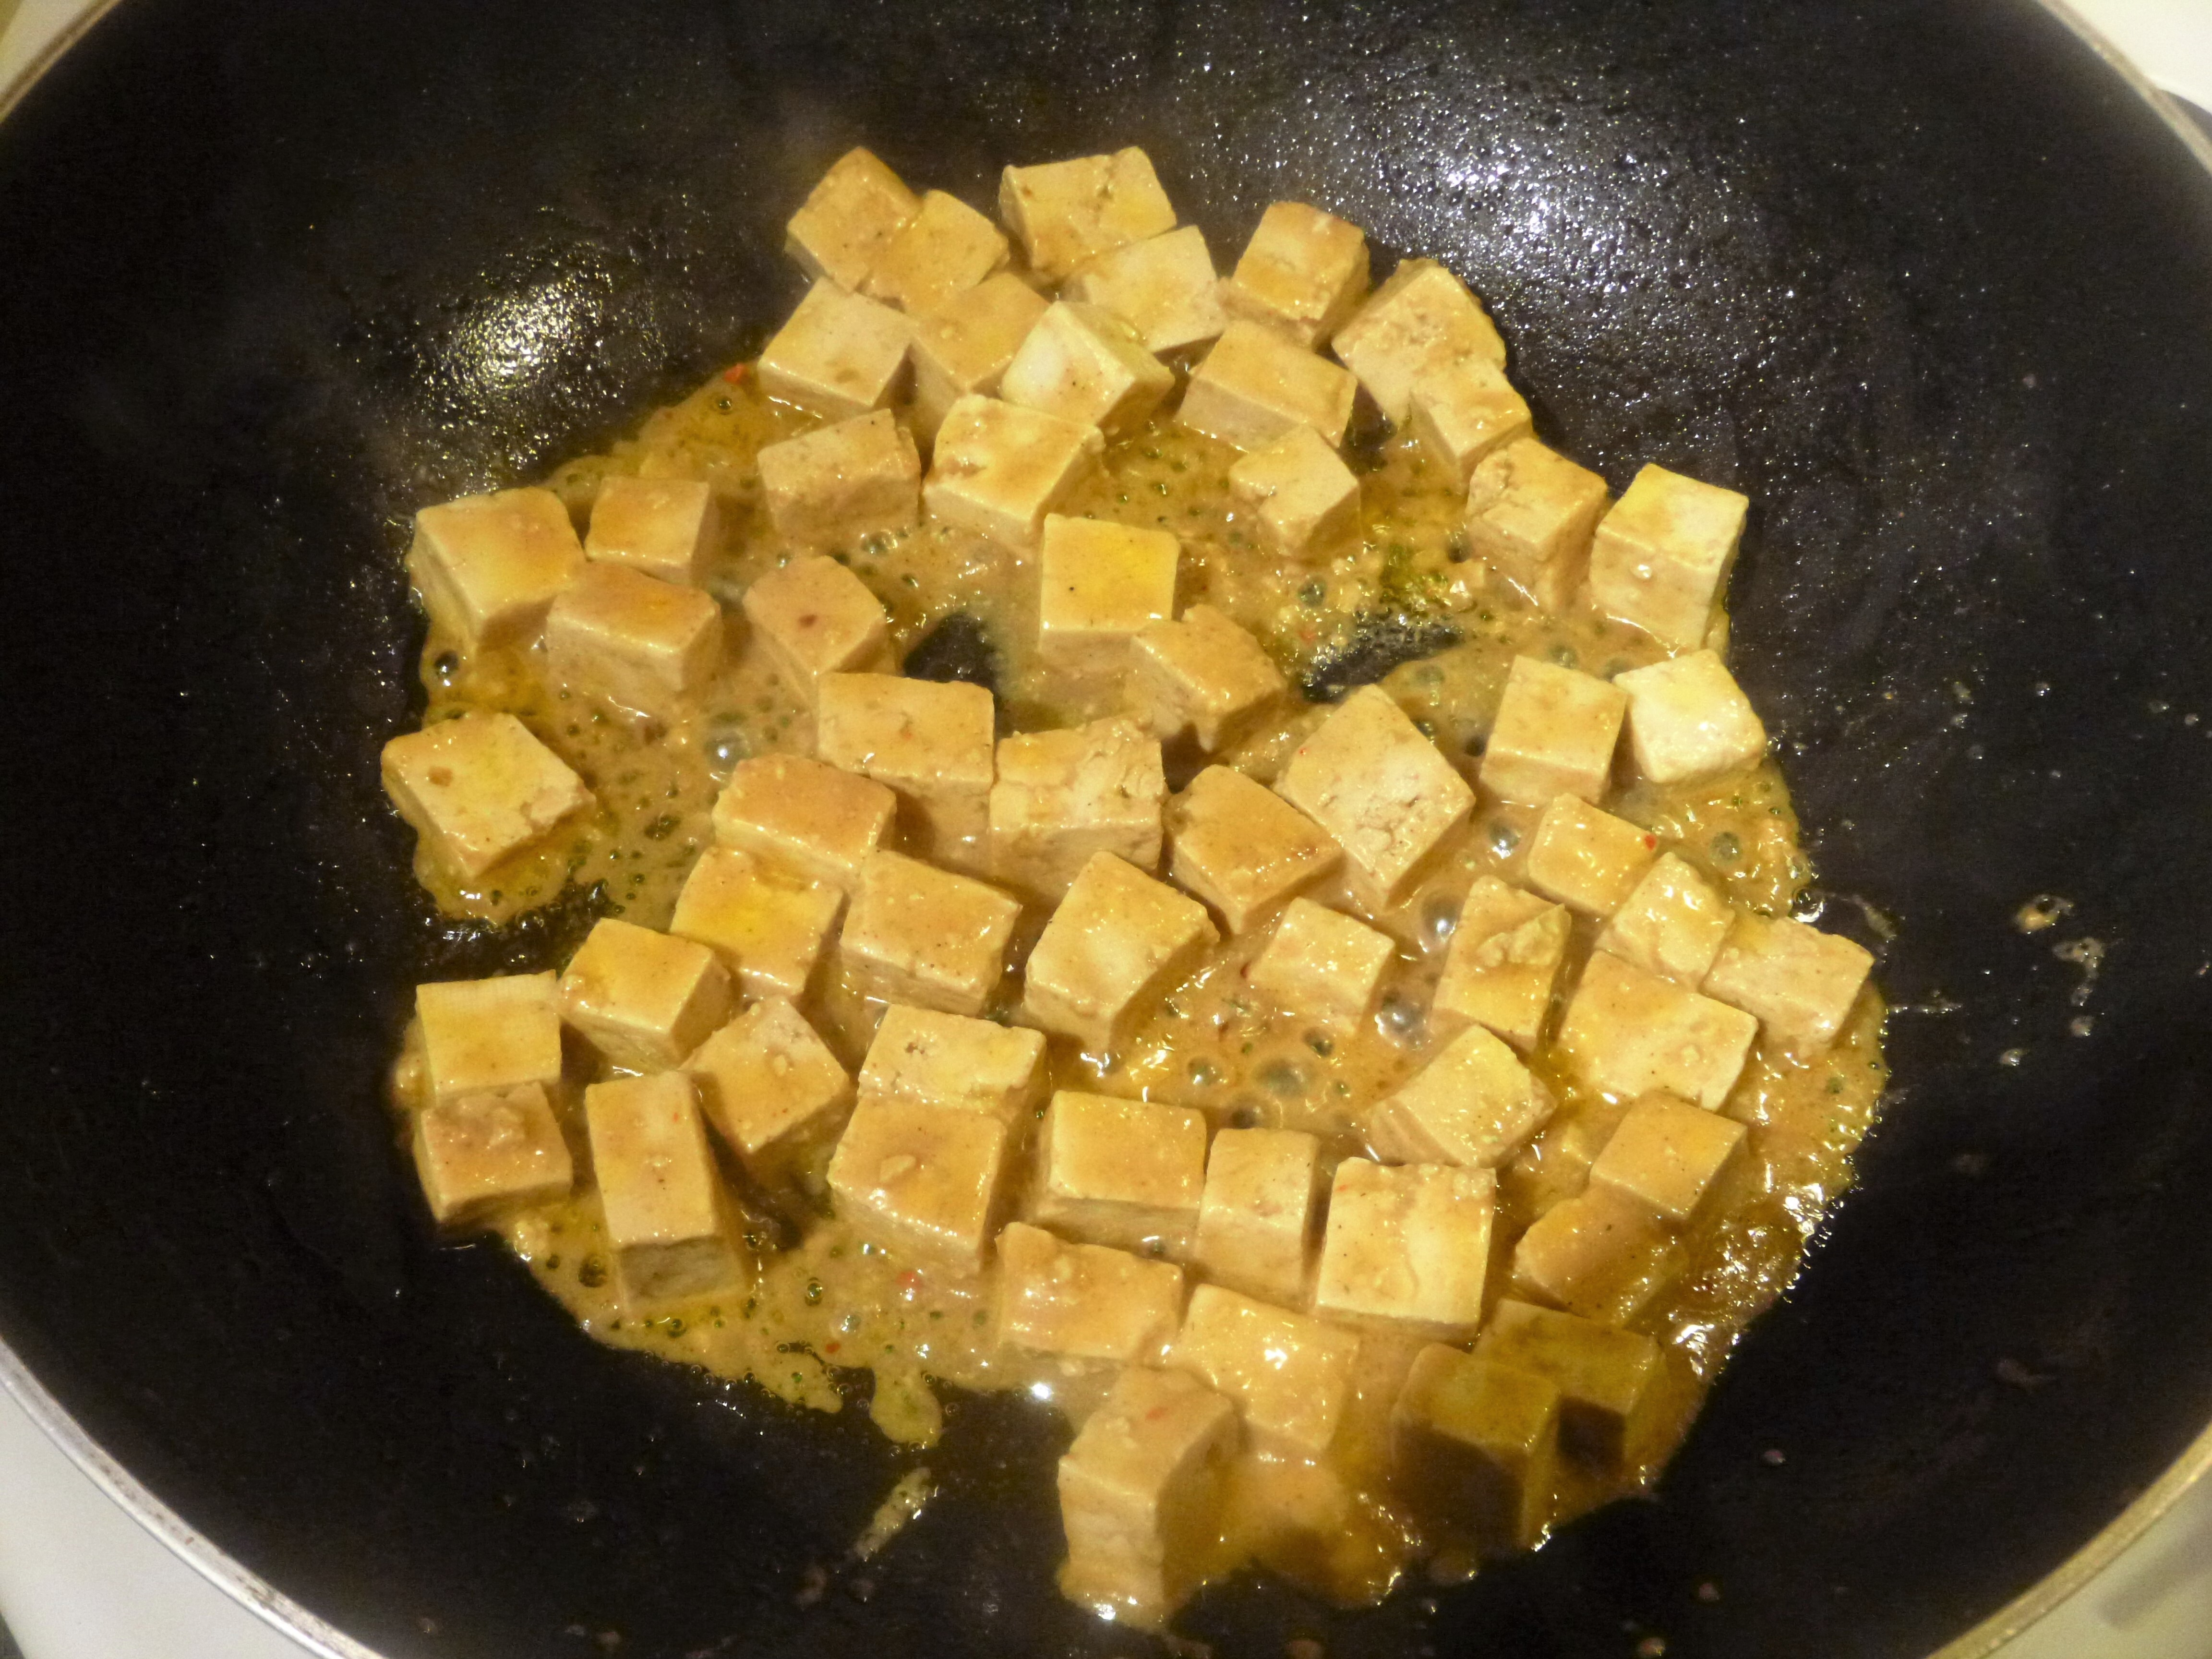 Marinated Tofu Stir Fry with Swiss Chard, Mushrooms and Miso Sauce Recipe